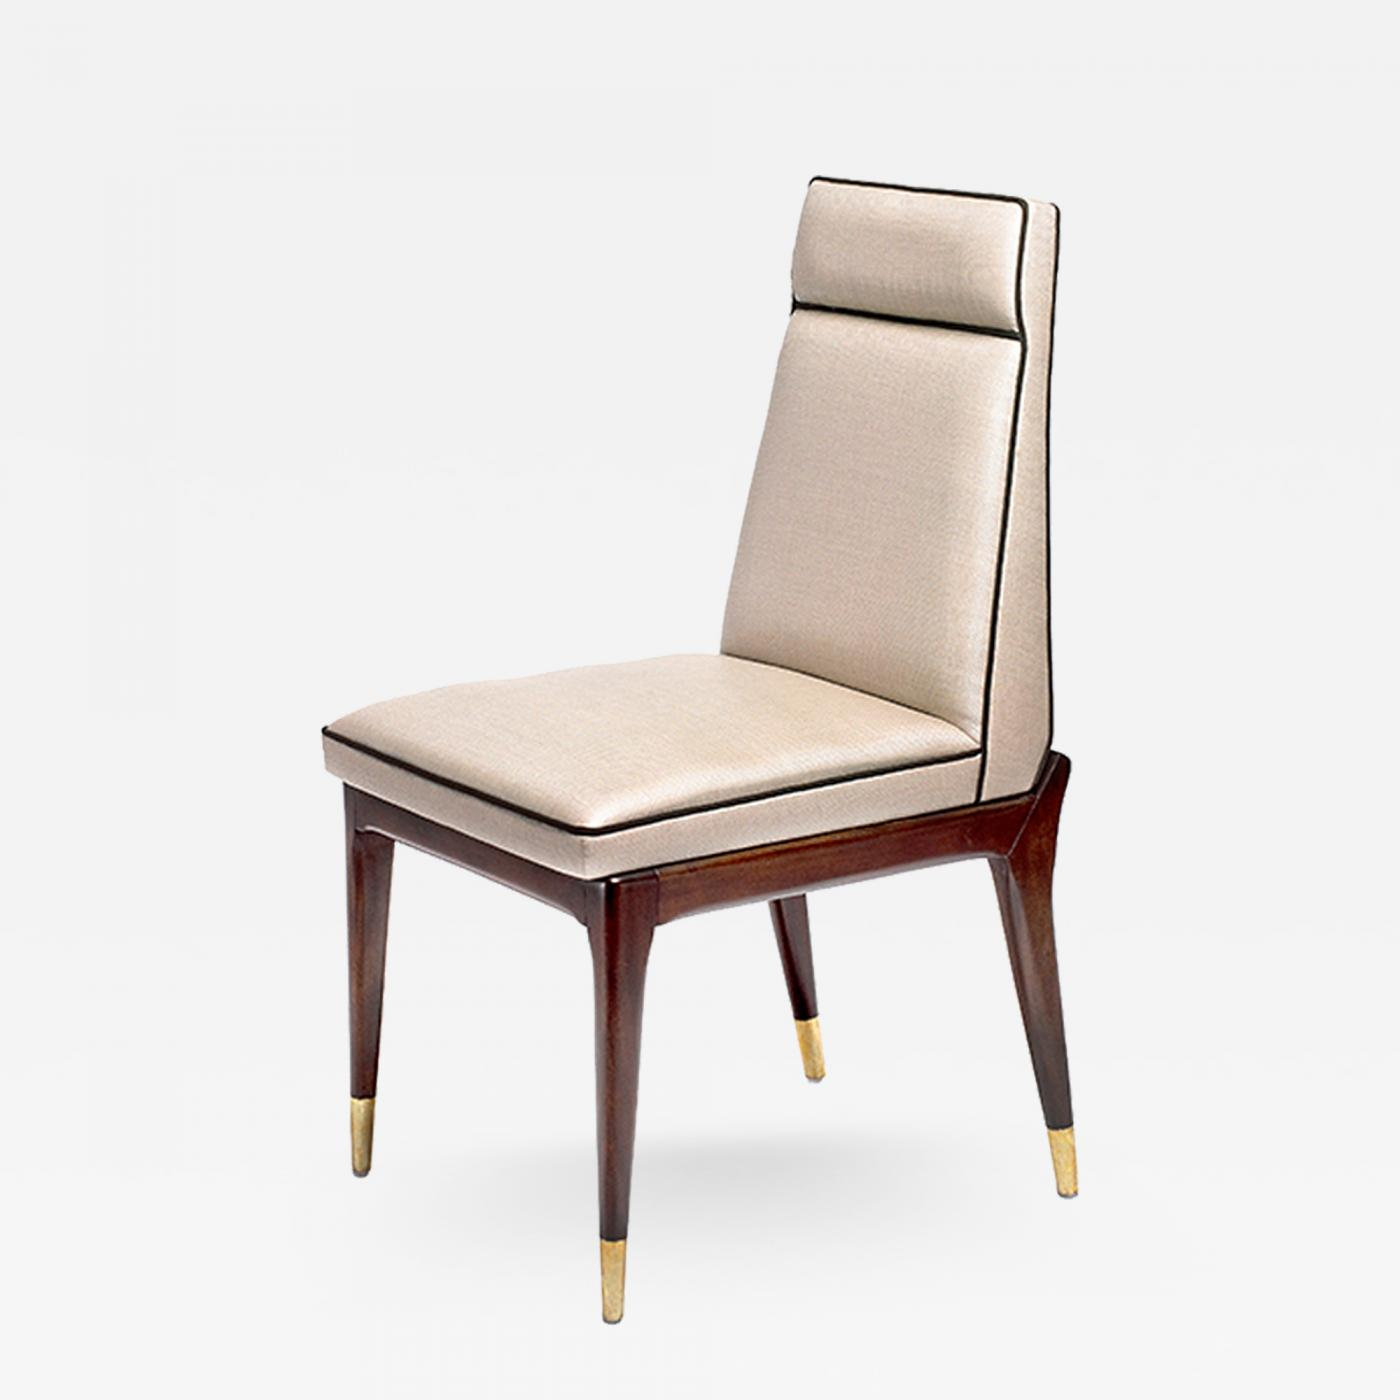 Listings / Furniture / Seating / Side Chairs · Tuxedo Side Chair